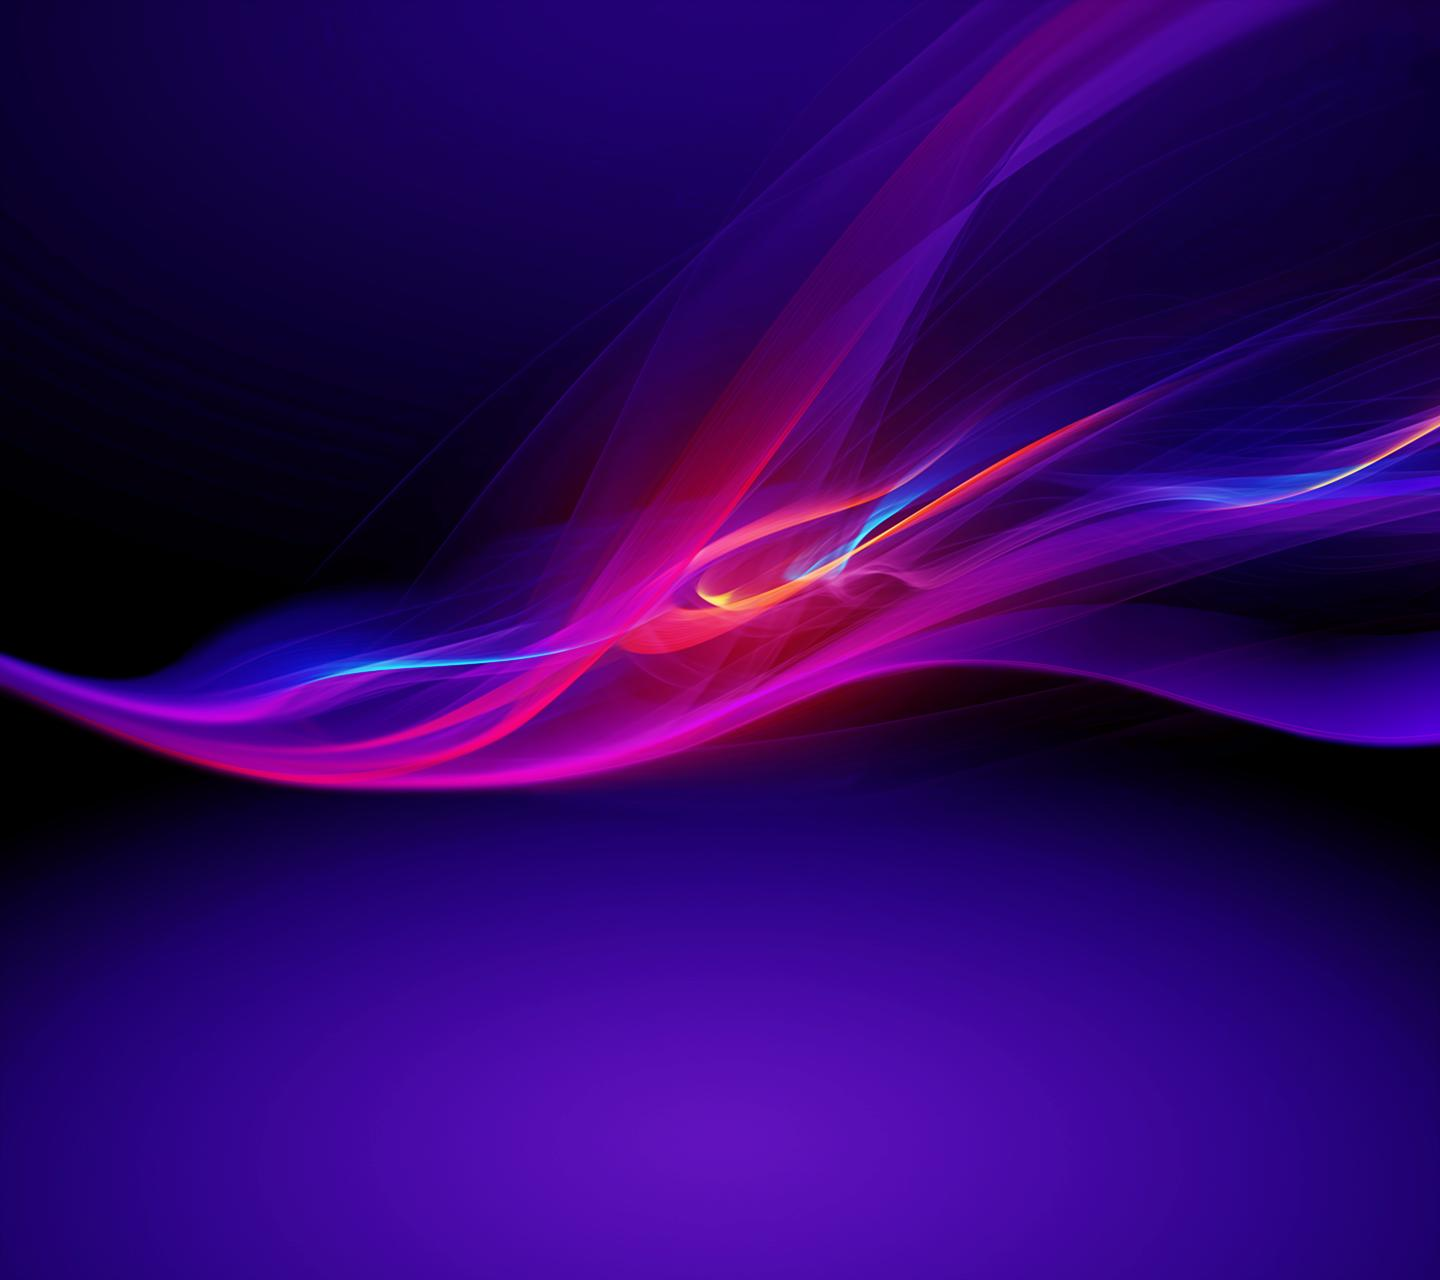 40 Sony Xperia Wallpapers Download On Wallpapersafari